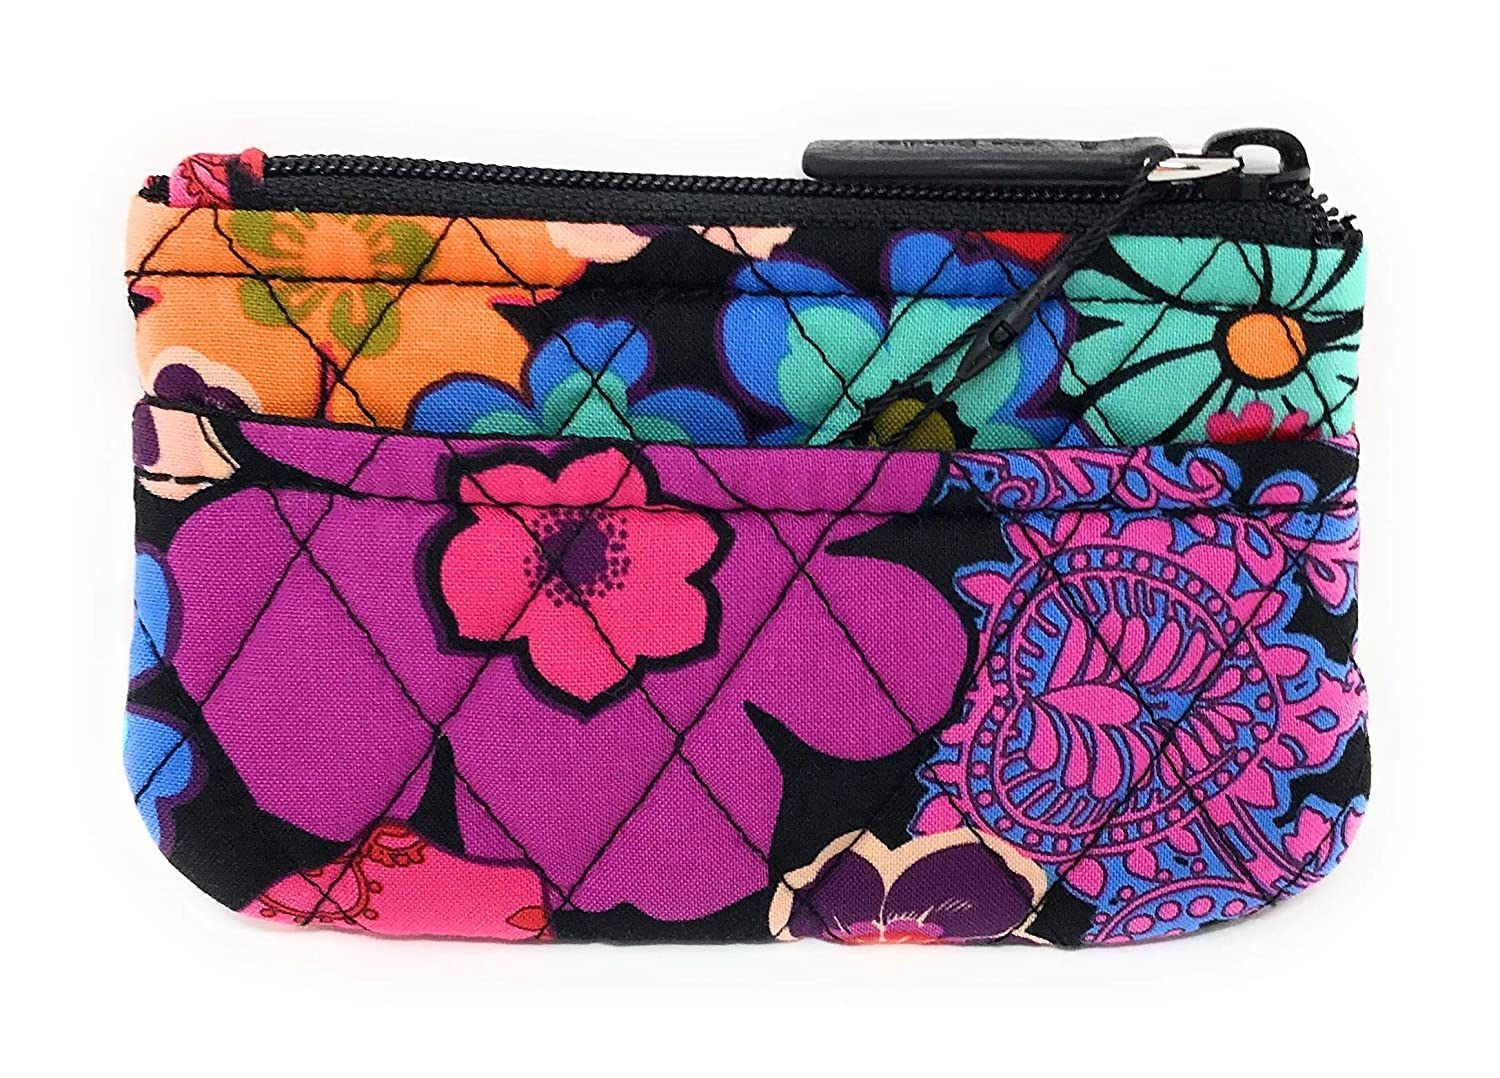 Vera Bradley Coin Purse in Floral Fiesta